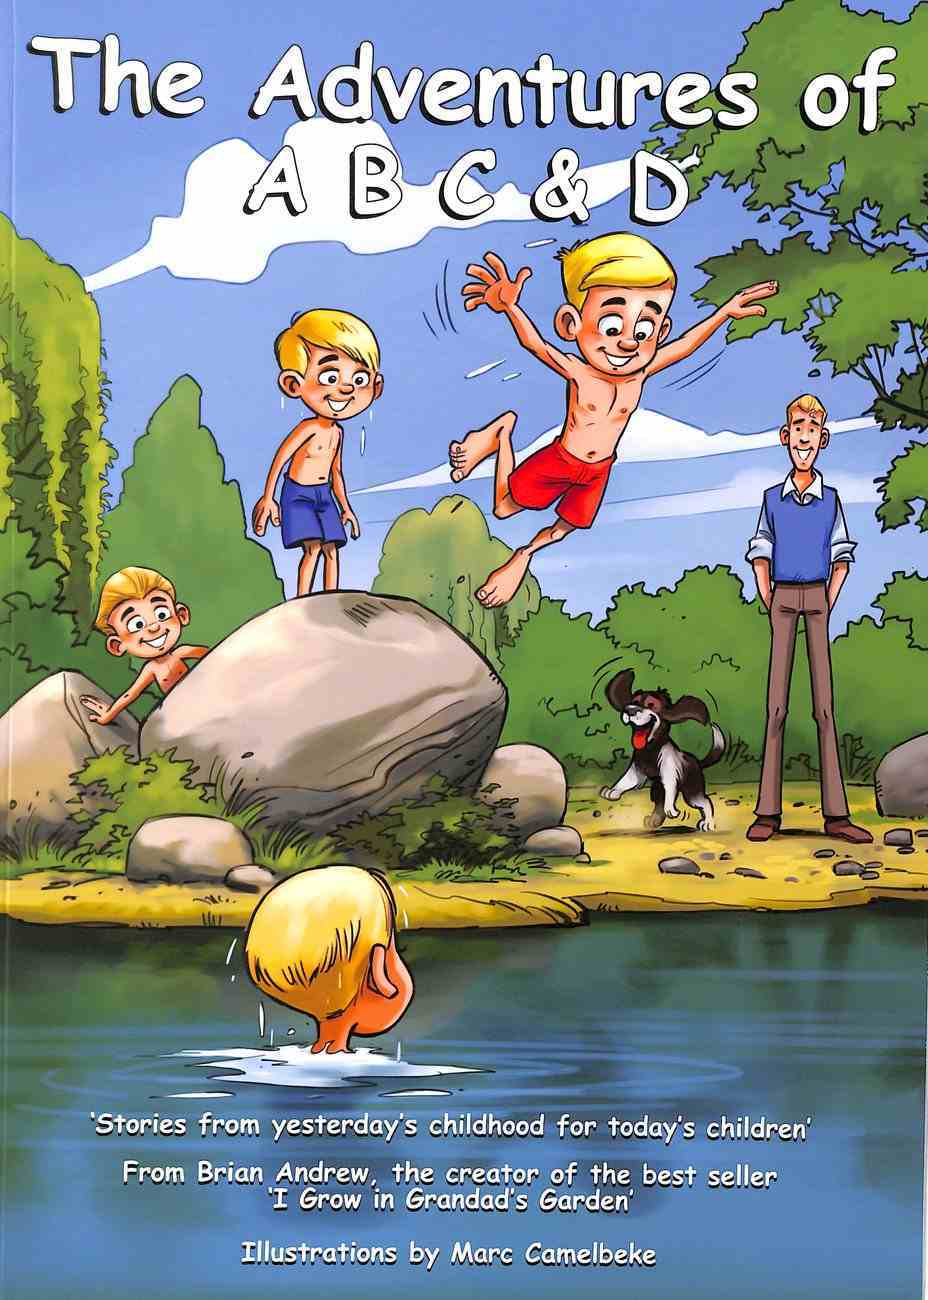 The Adventures of a B C and D: Stories From Yesterday For Today's Children Paperback